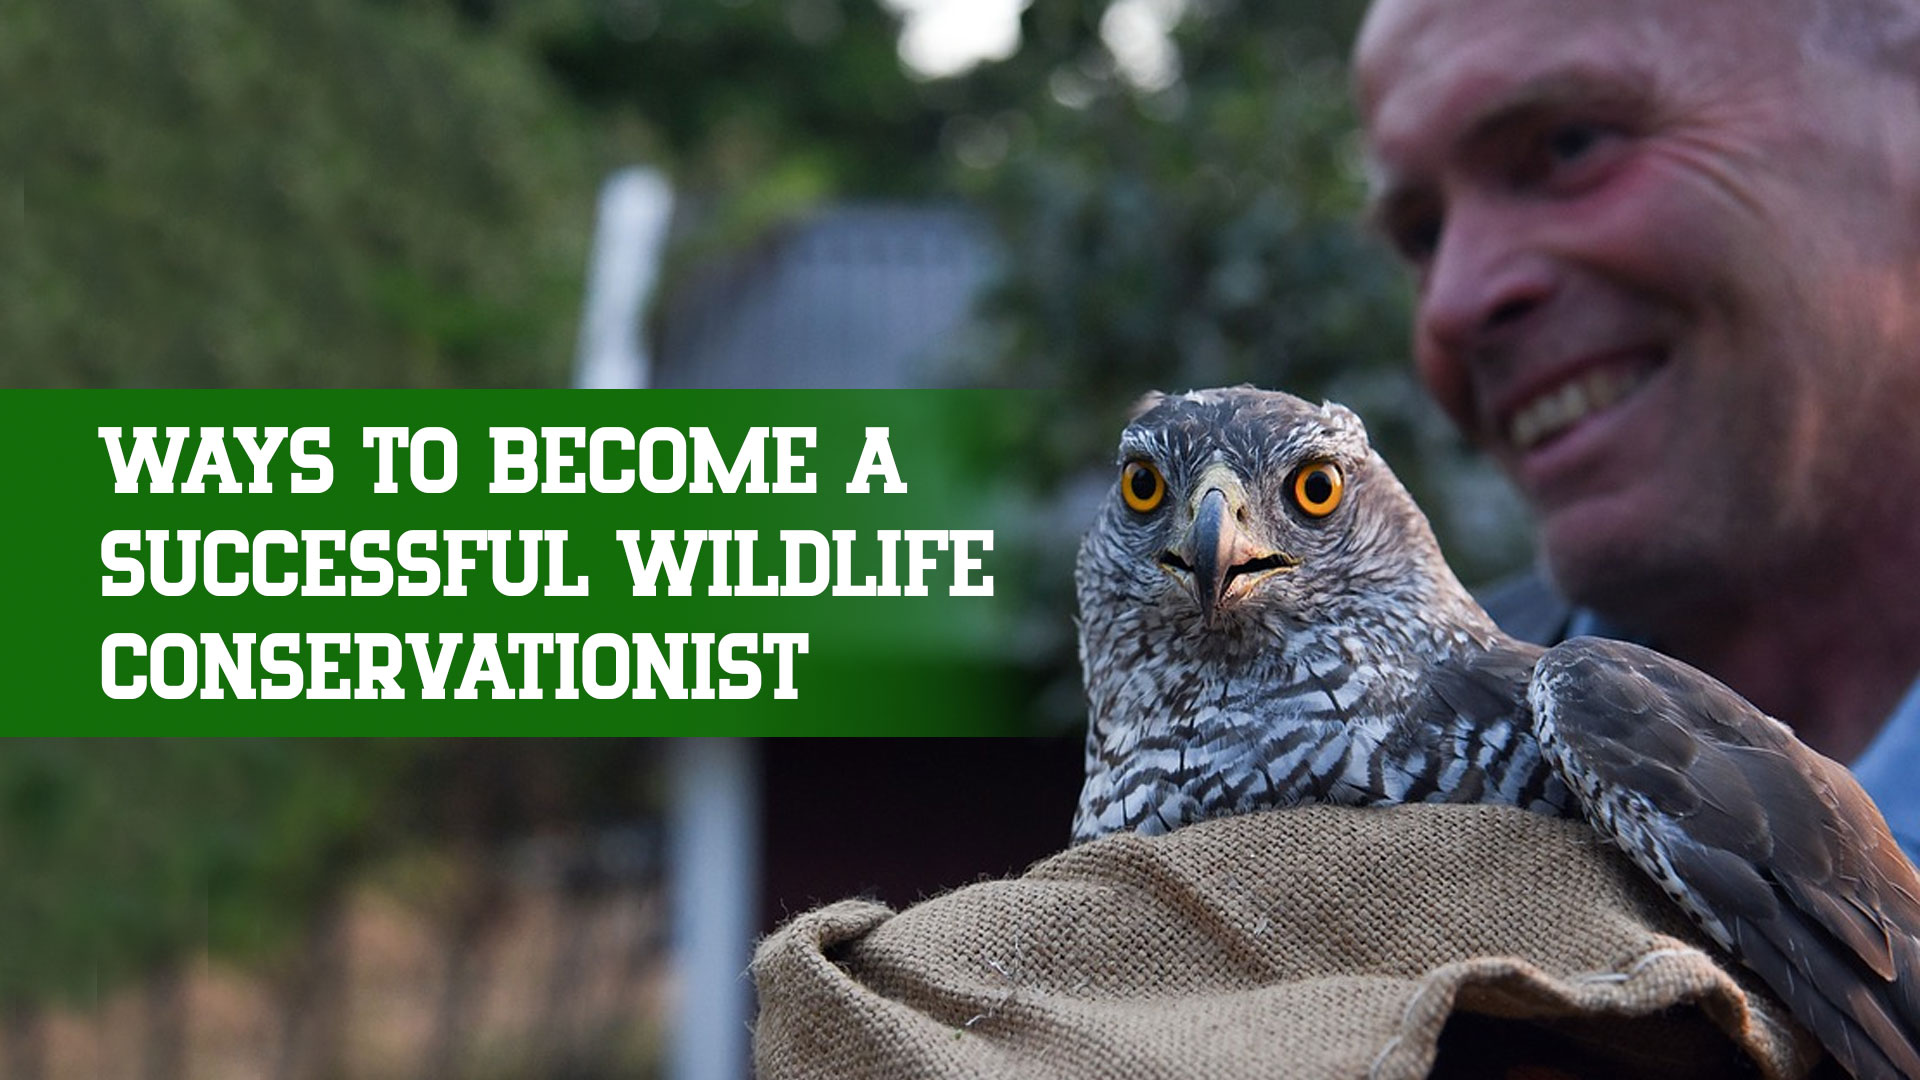 Ways To Become A Successful Wildlife Conservationist